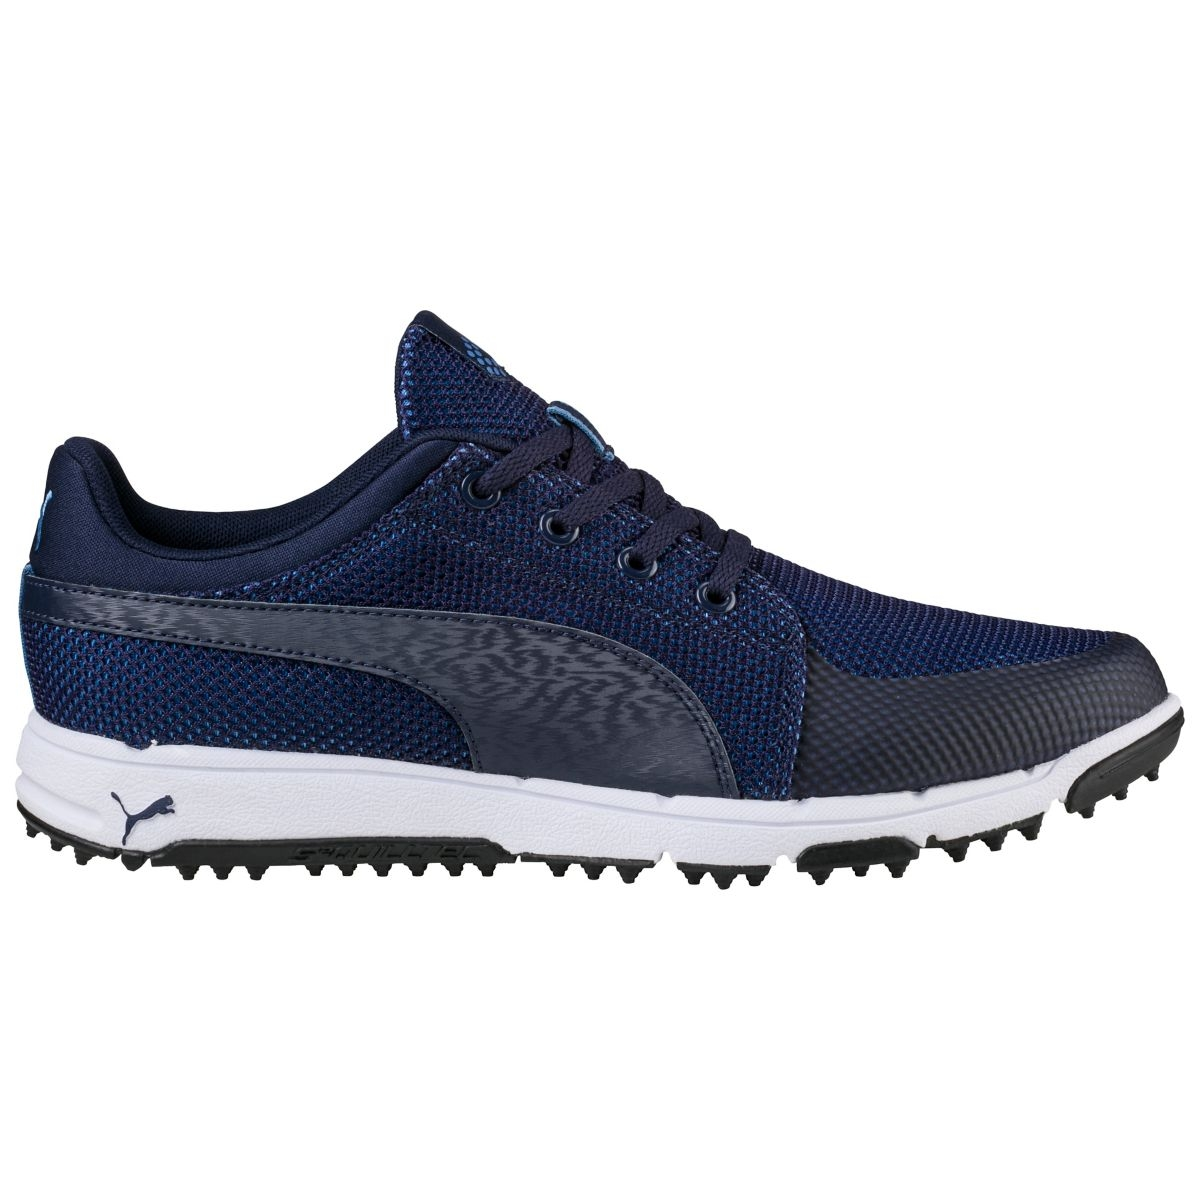 Puma Mens Grip Sport Tech Spikeless Golf Shoe - Peacoat